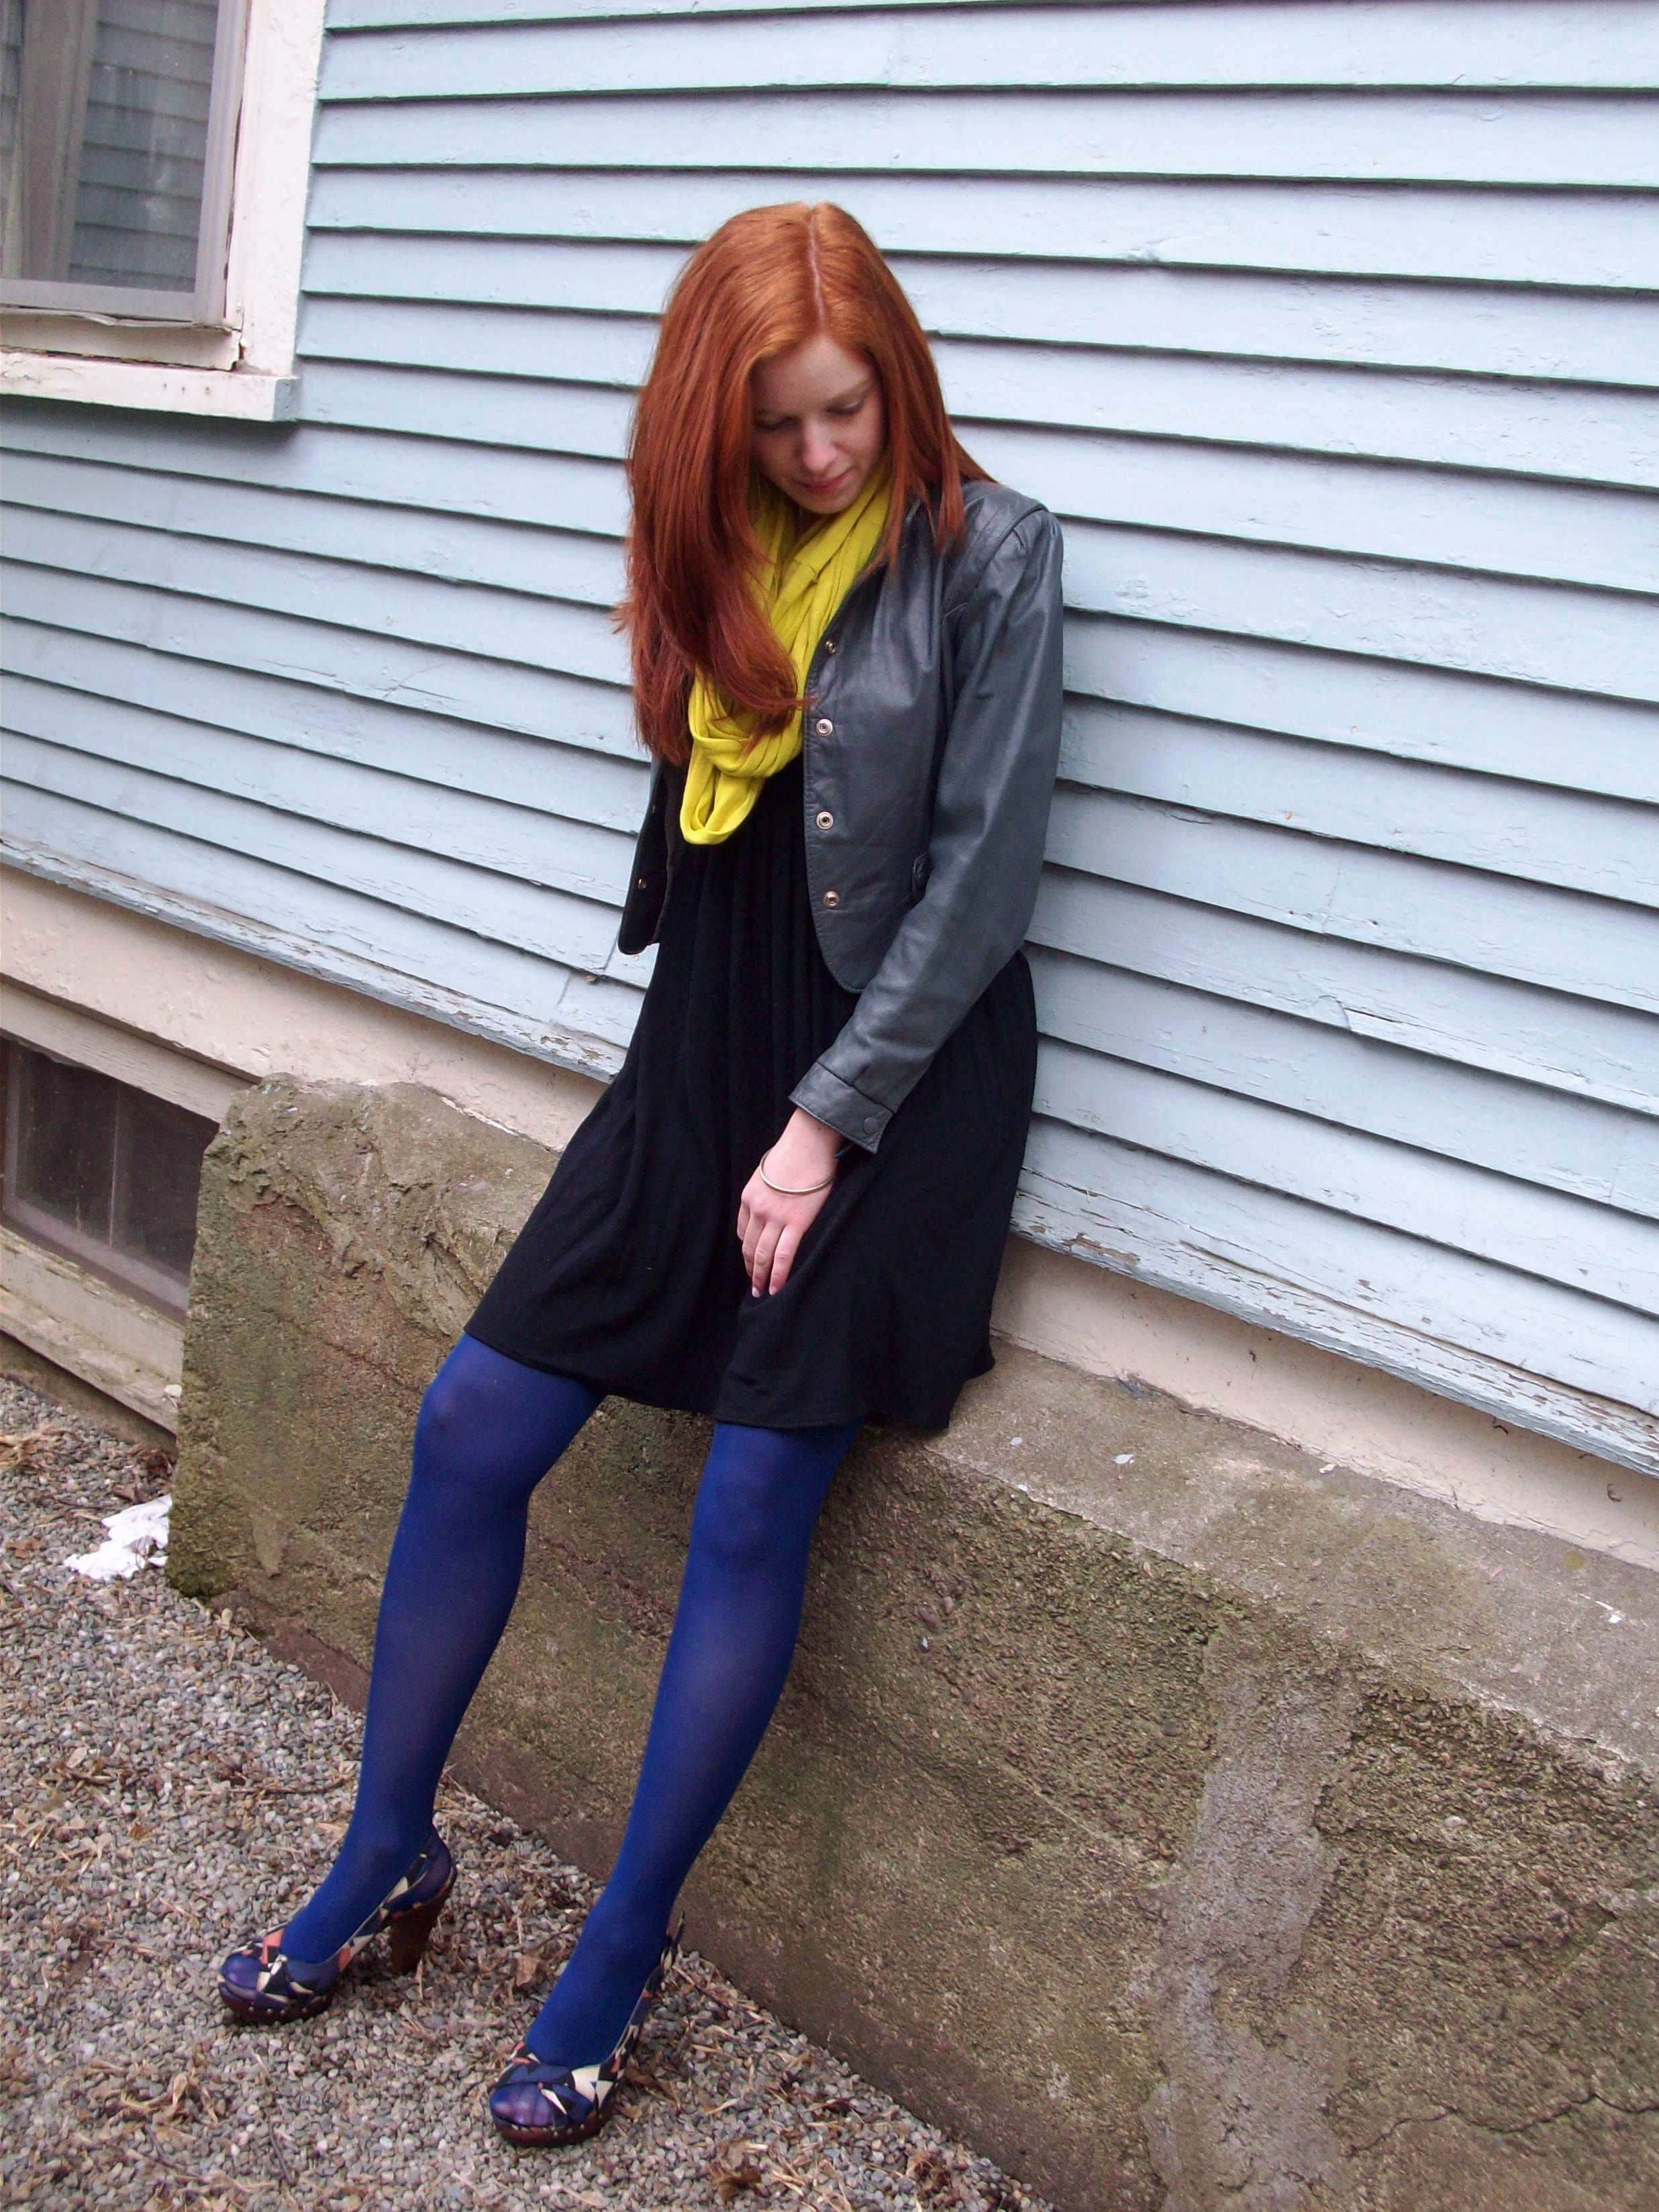 7eb1e4180 Fashion my legs - The Tights and Hosiery blog  How to wear open-toed shoes  with tights